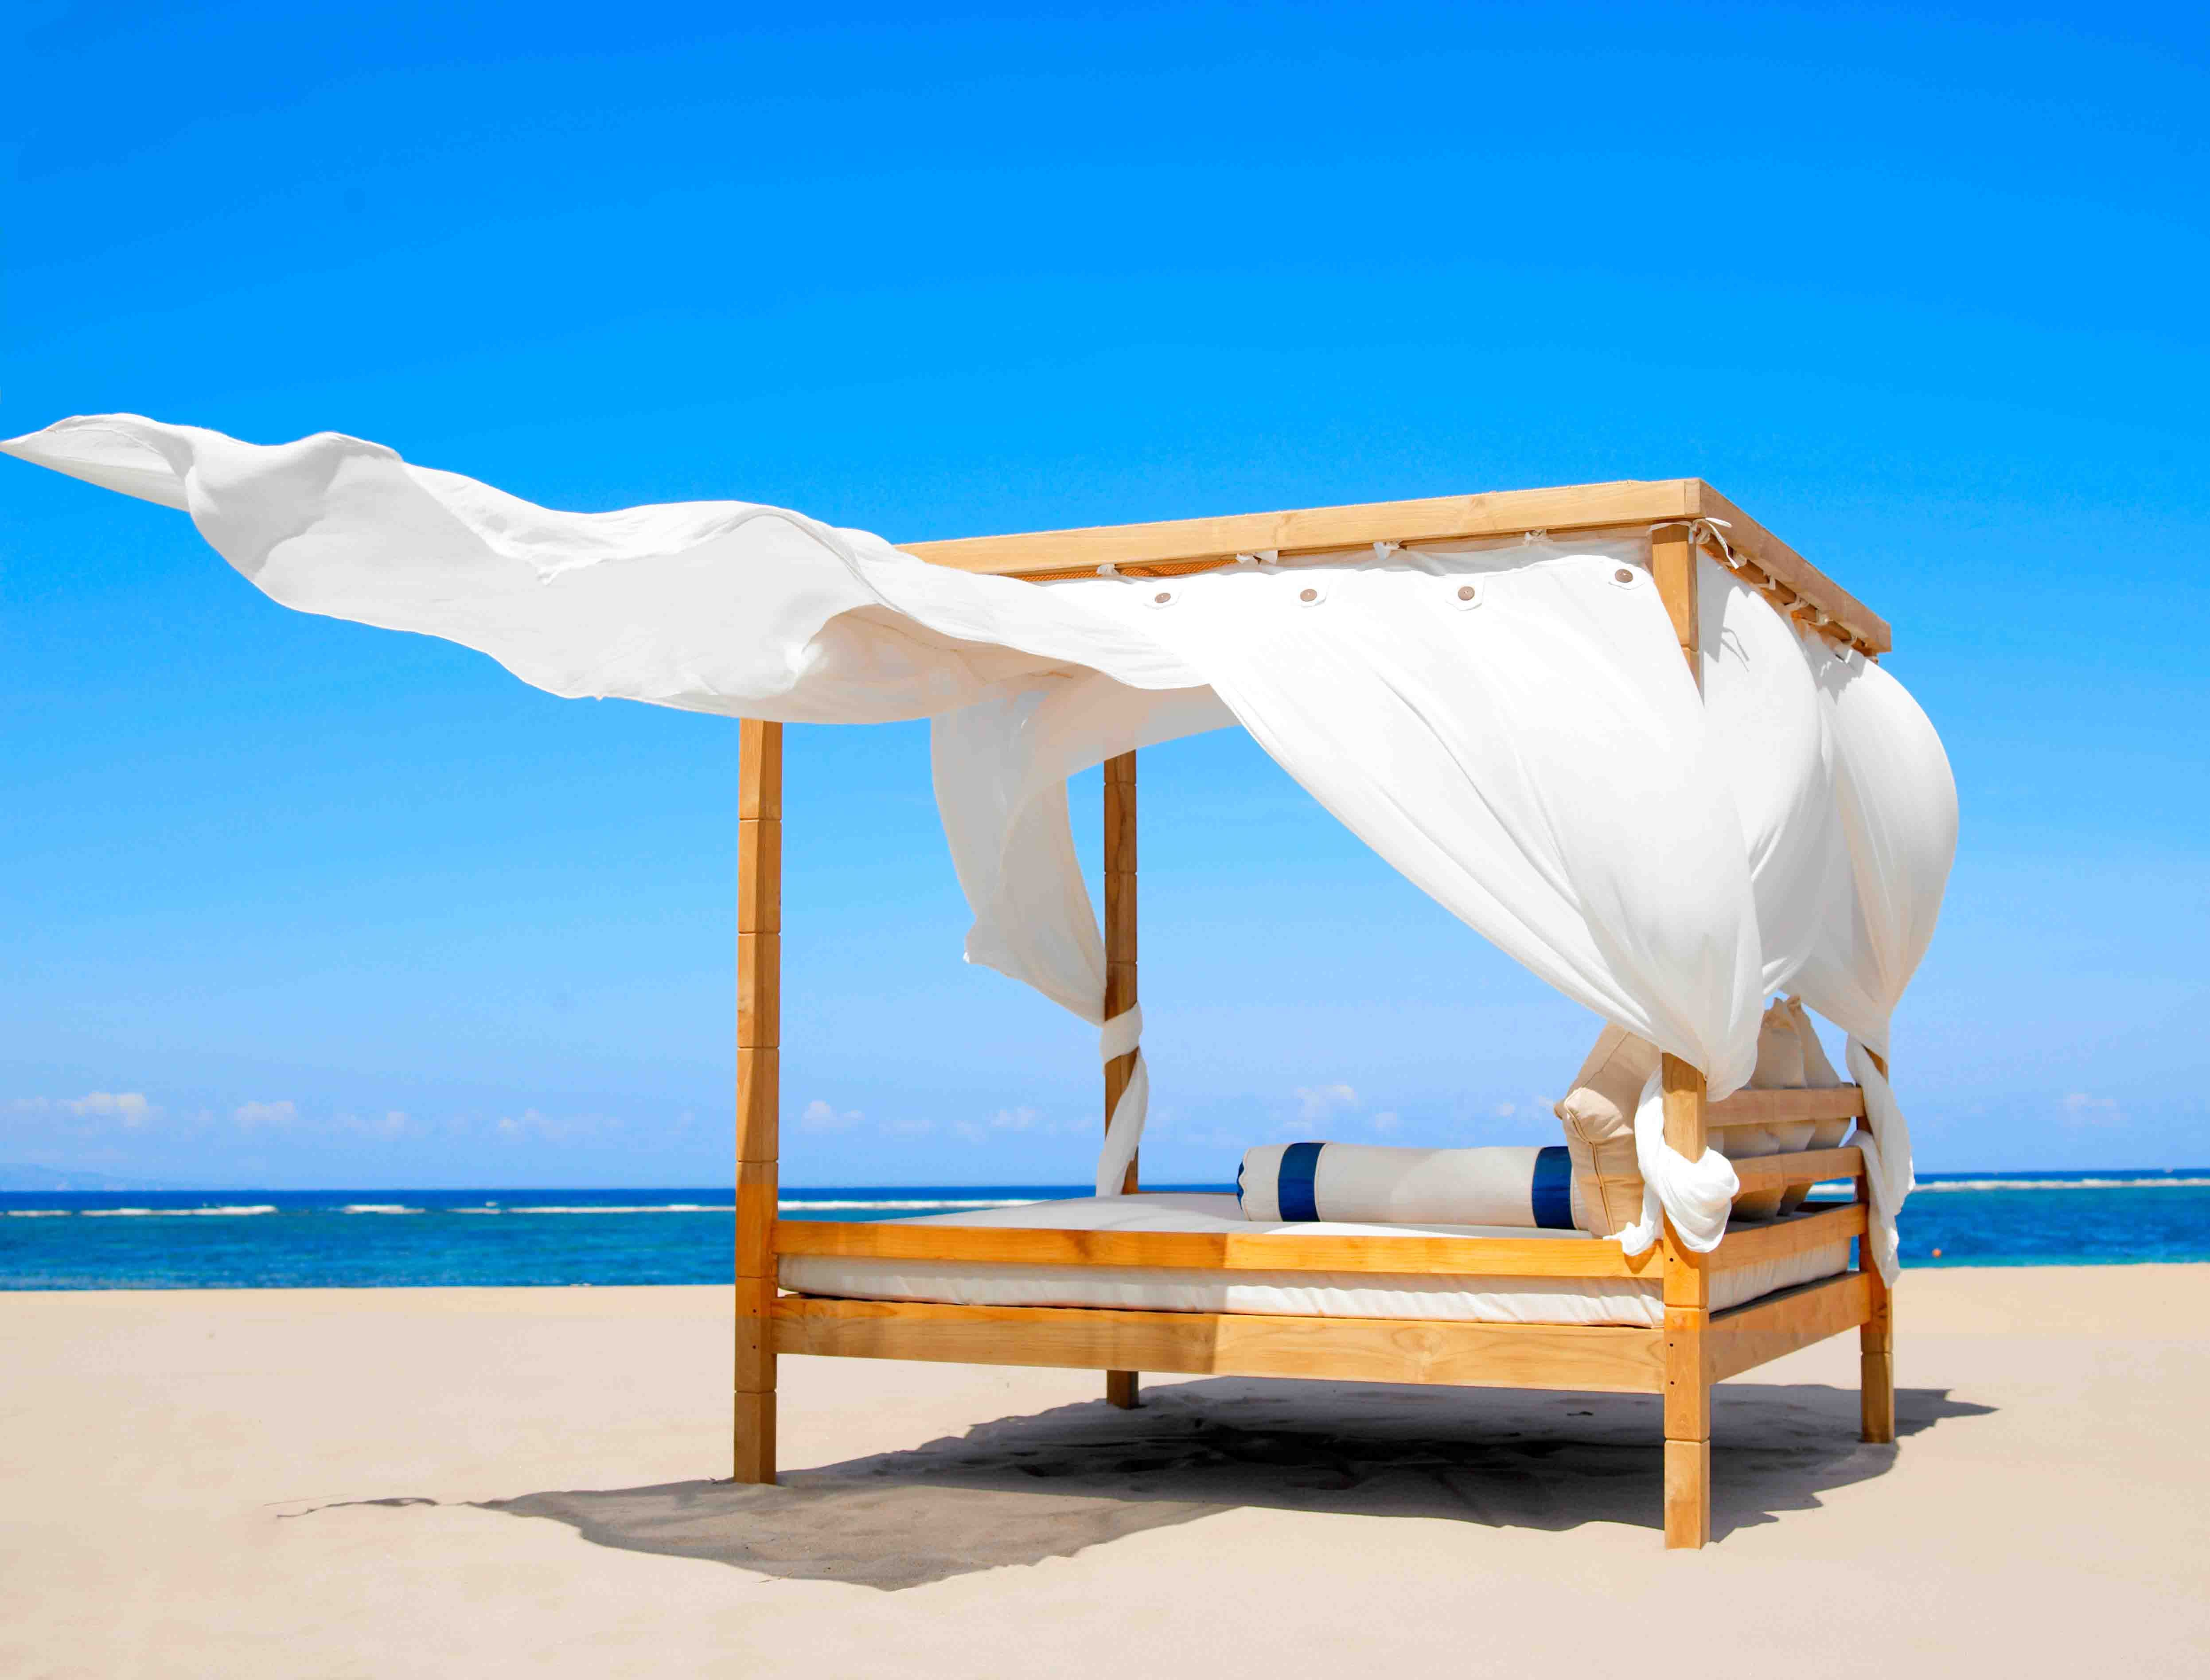 Beach Mirage Cabana By The